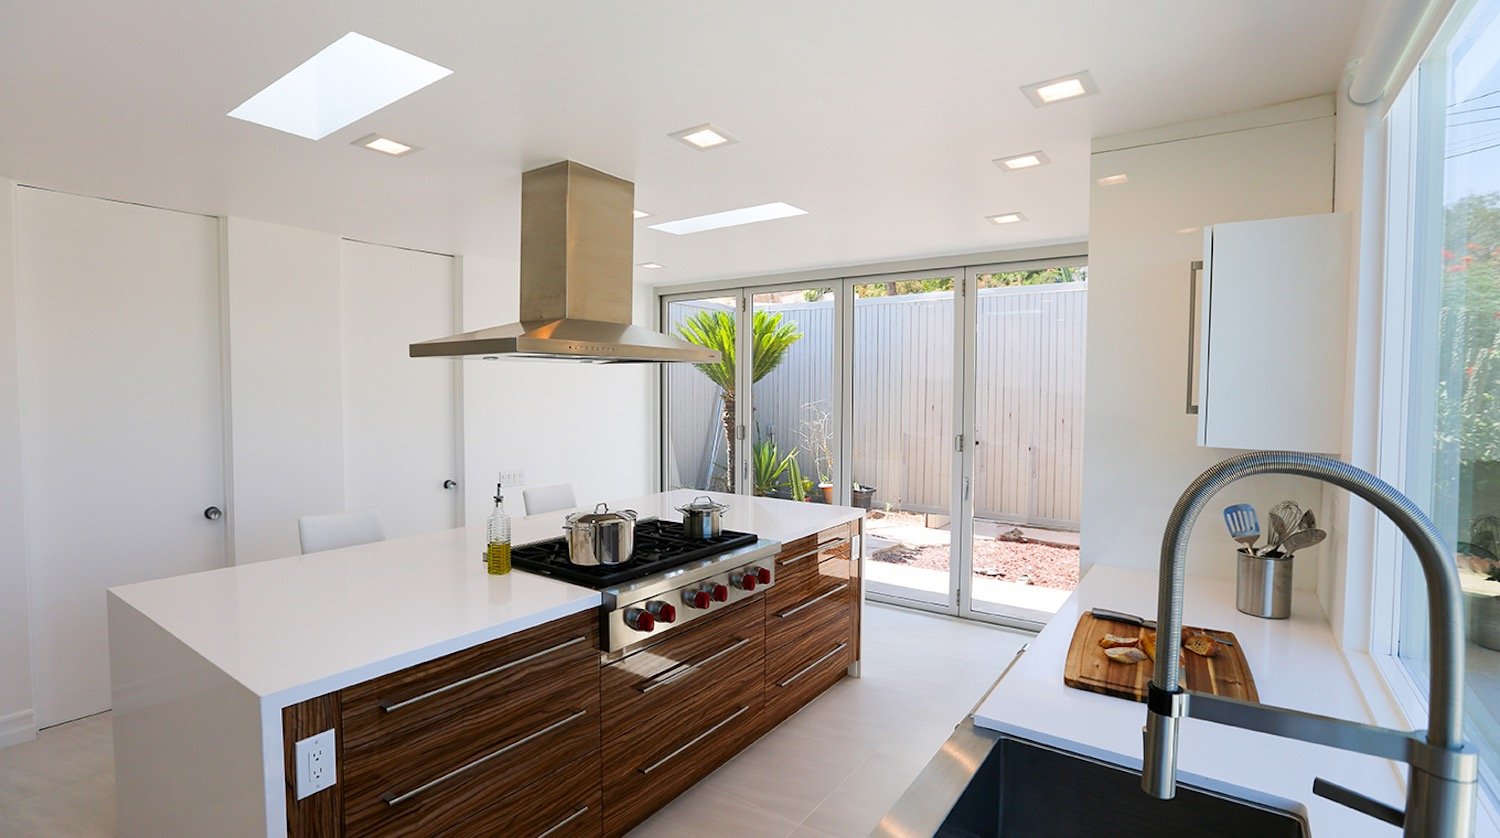 Modern Metal Bifold Doors For White Minimalist Contemporary Kitchen Interior (Image 18 of 24)